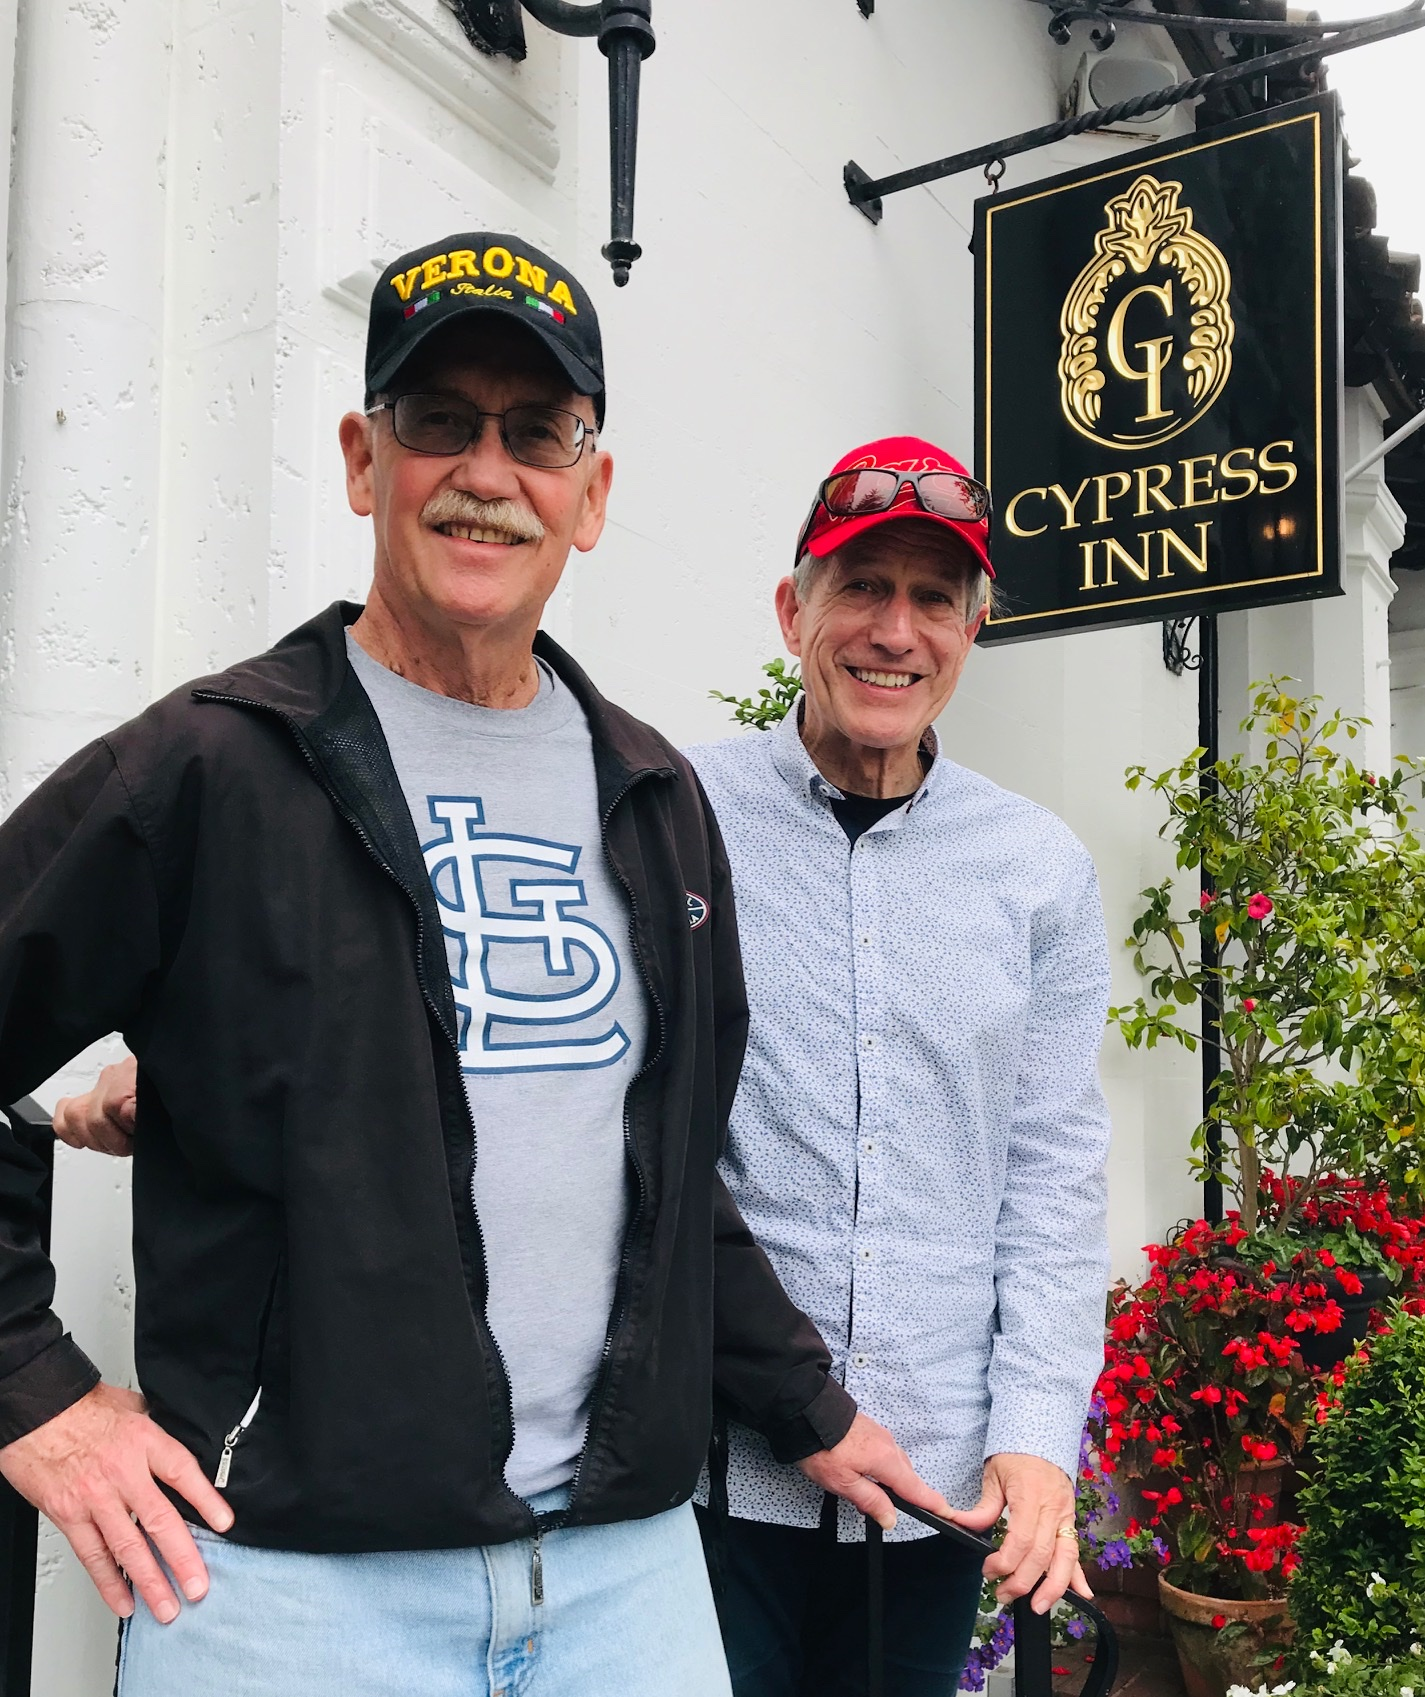 Vince and I at Cypress Inn in Carmel